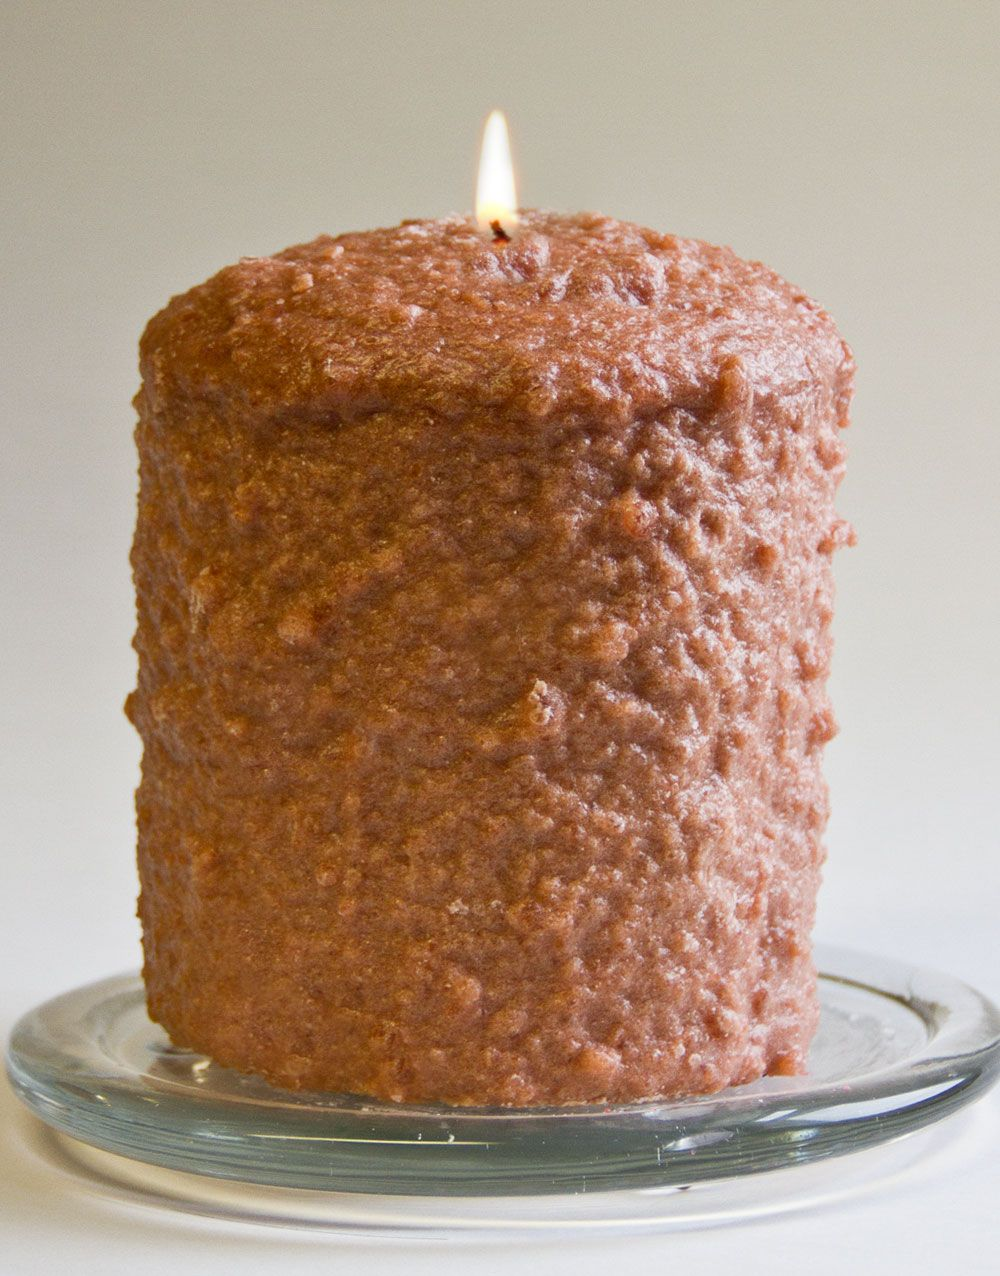 Cake Candle - Warm Glow - Caramel Coffee Cake - 5in x 4.5in